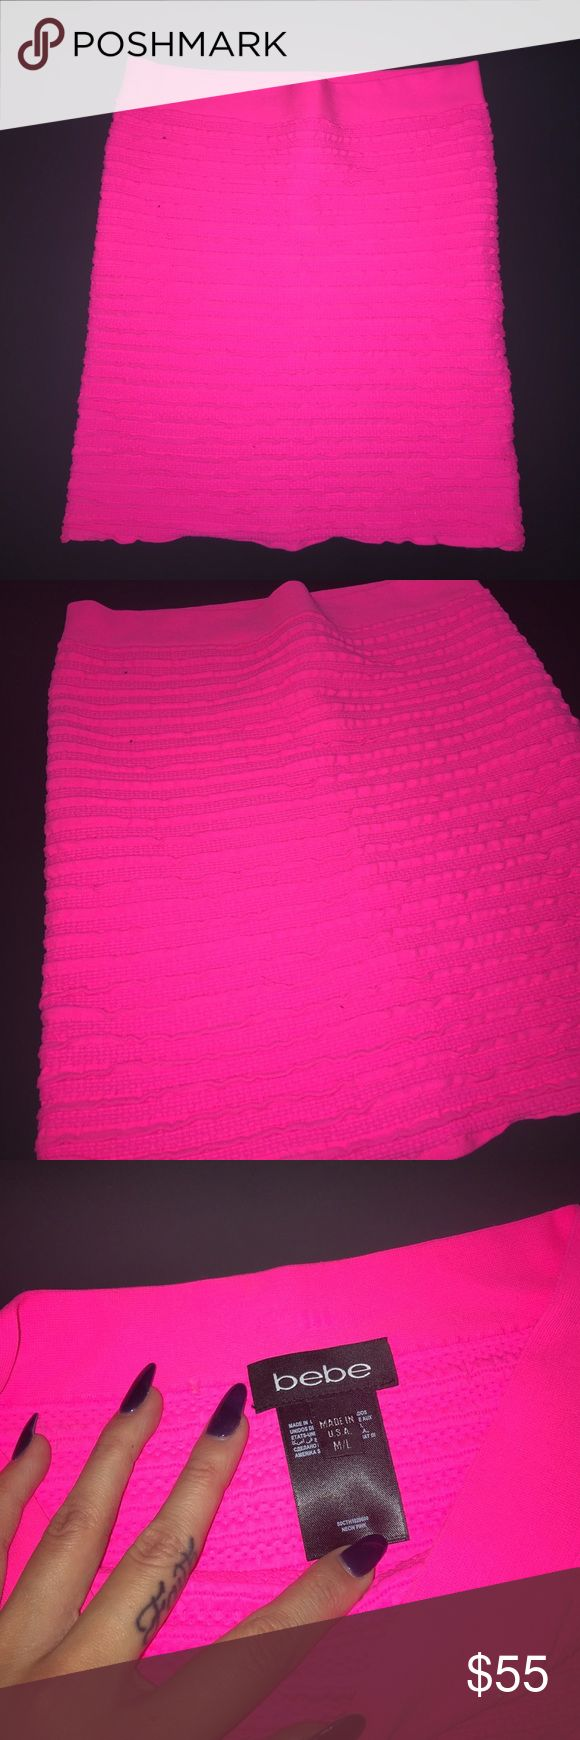 NEW! Bebe Hot Pink Stretch Skirt Brand new, without tags attached. Bebe hot pink stretchy fitted skirt. Fits a person in small well not overly tight but size is M/L bebe Skirts Mini